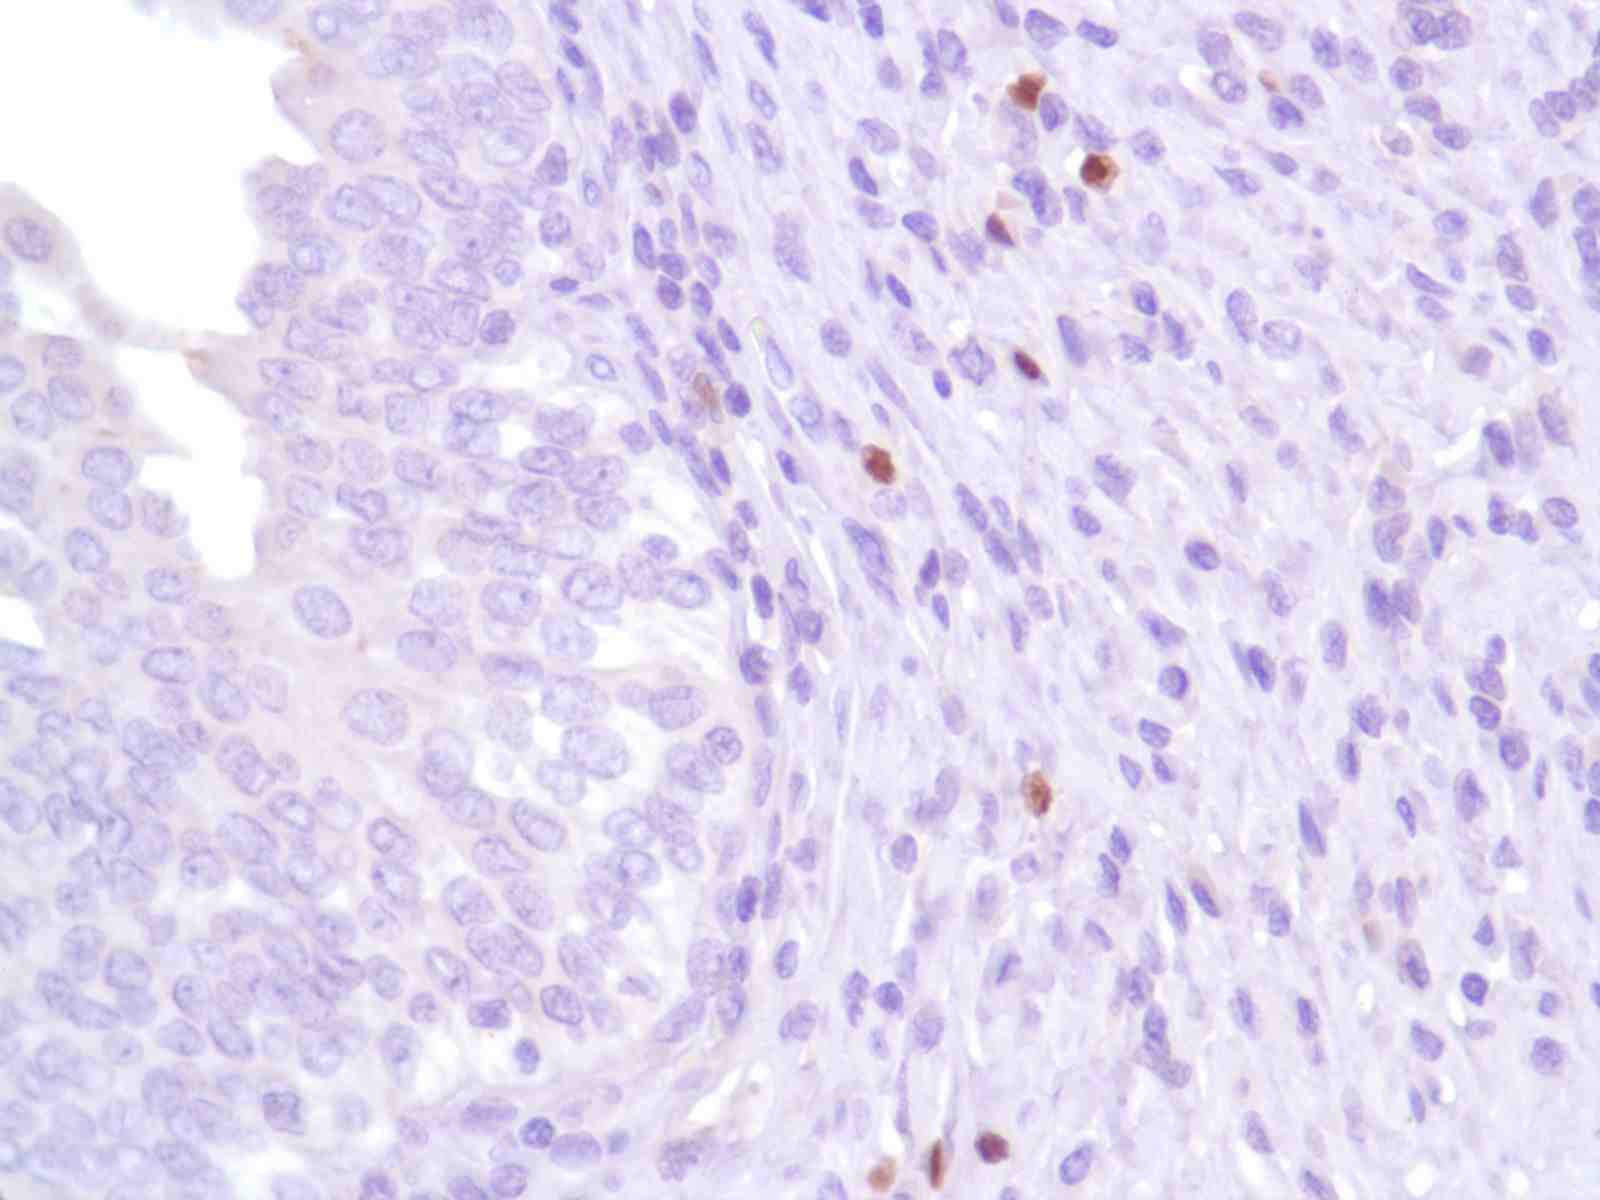 Human Bladder stained with anti-FoxP3 antibody